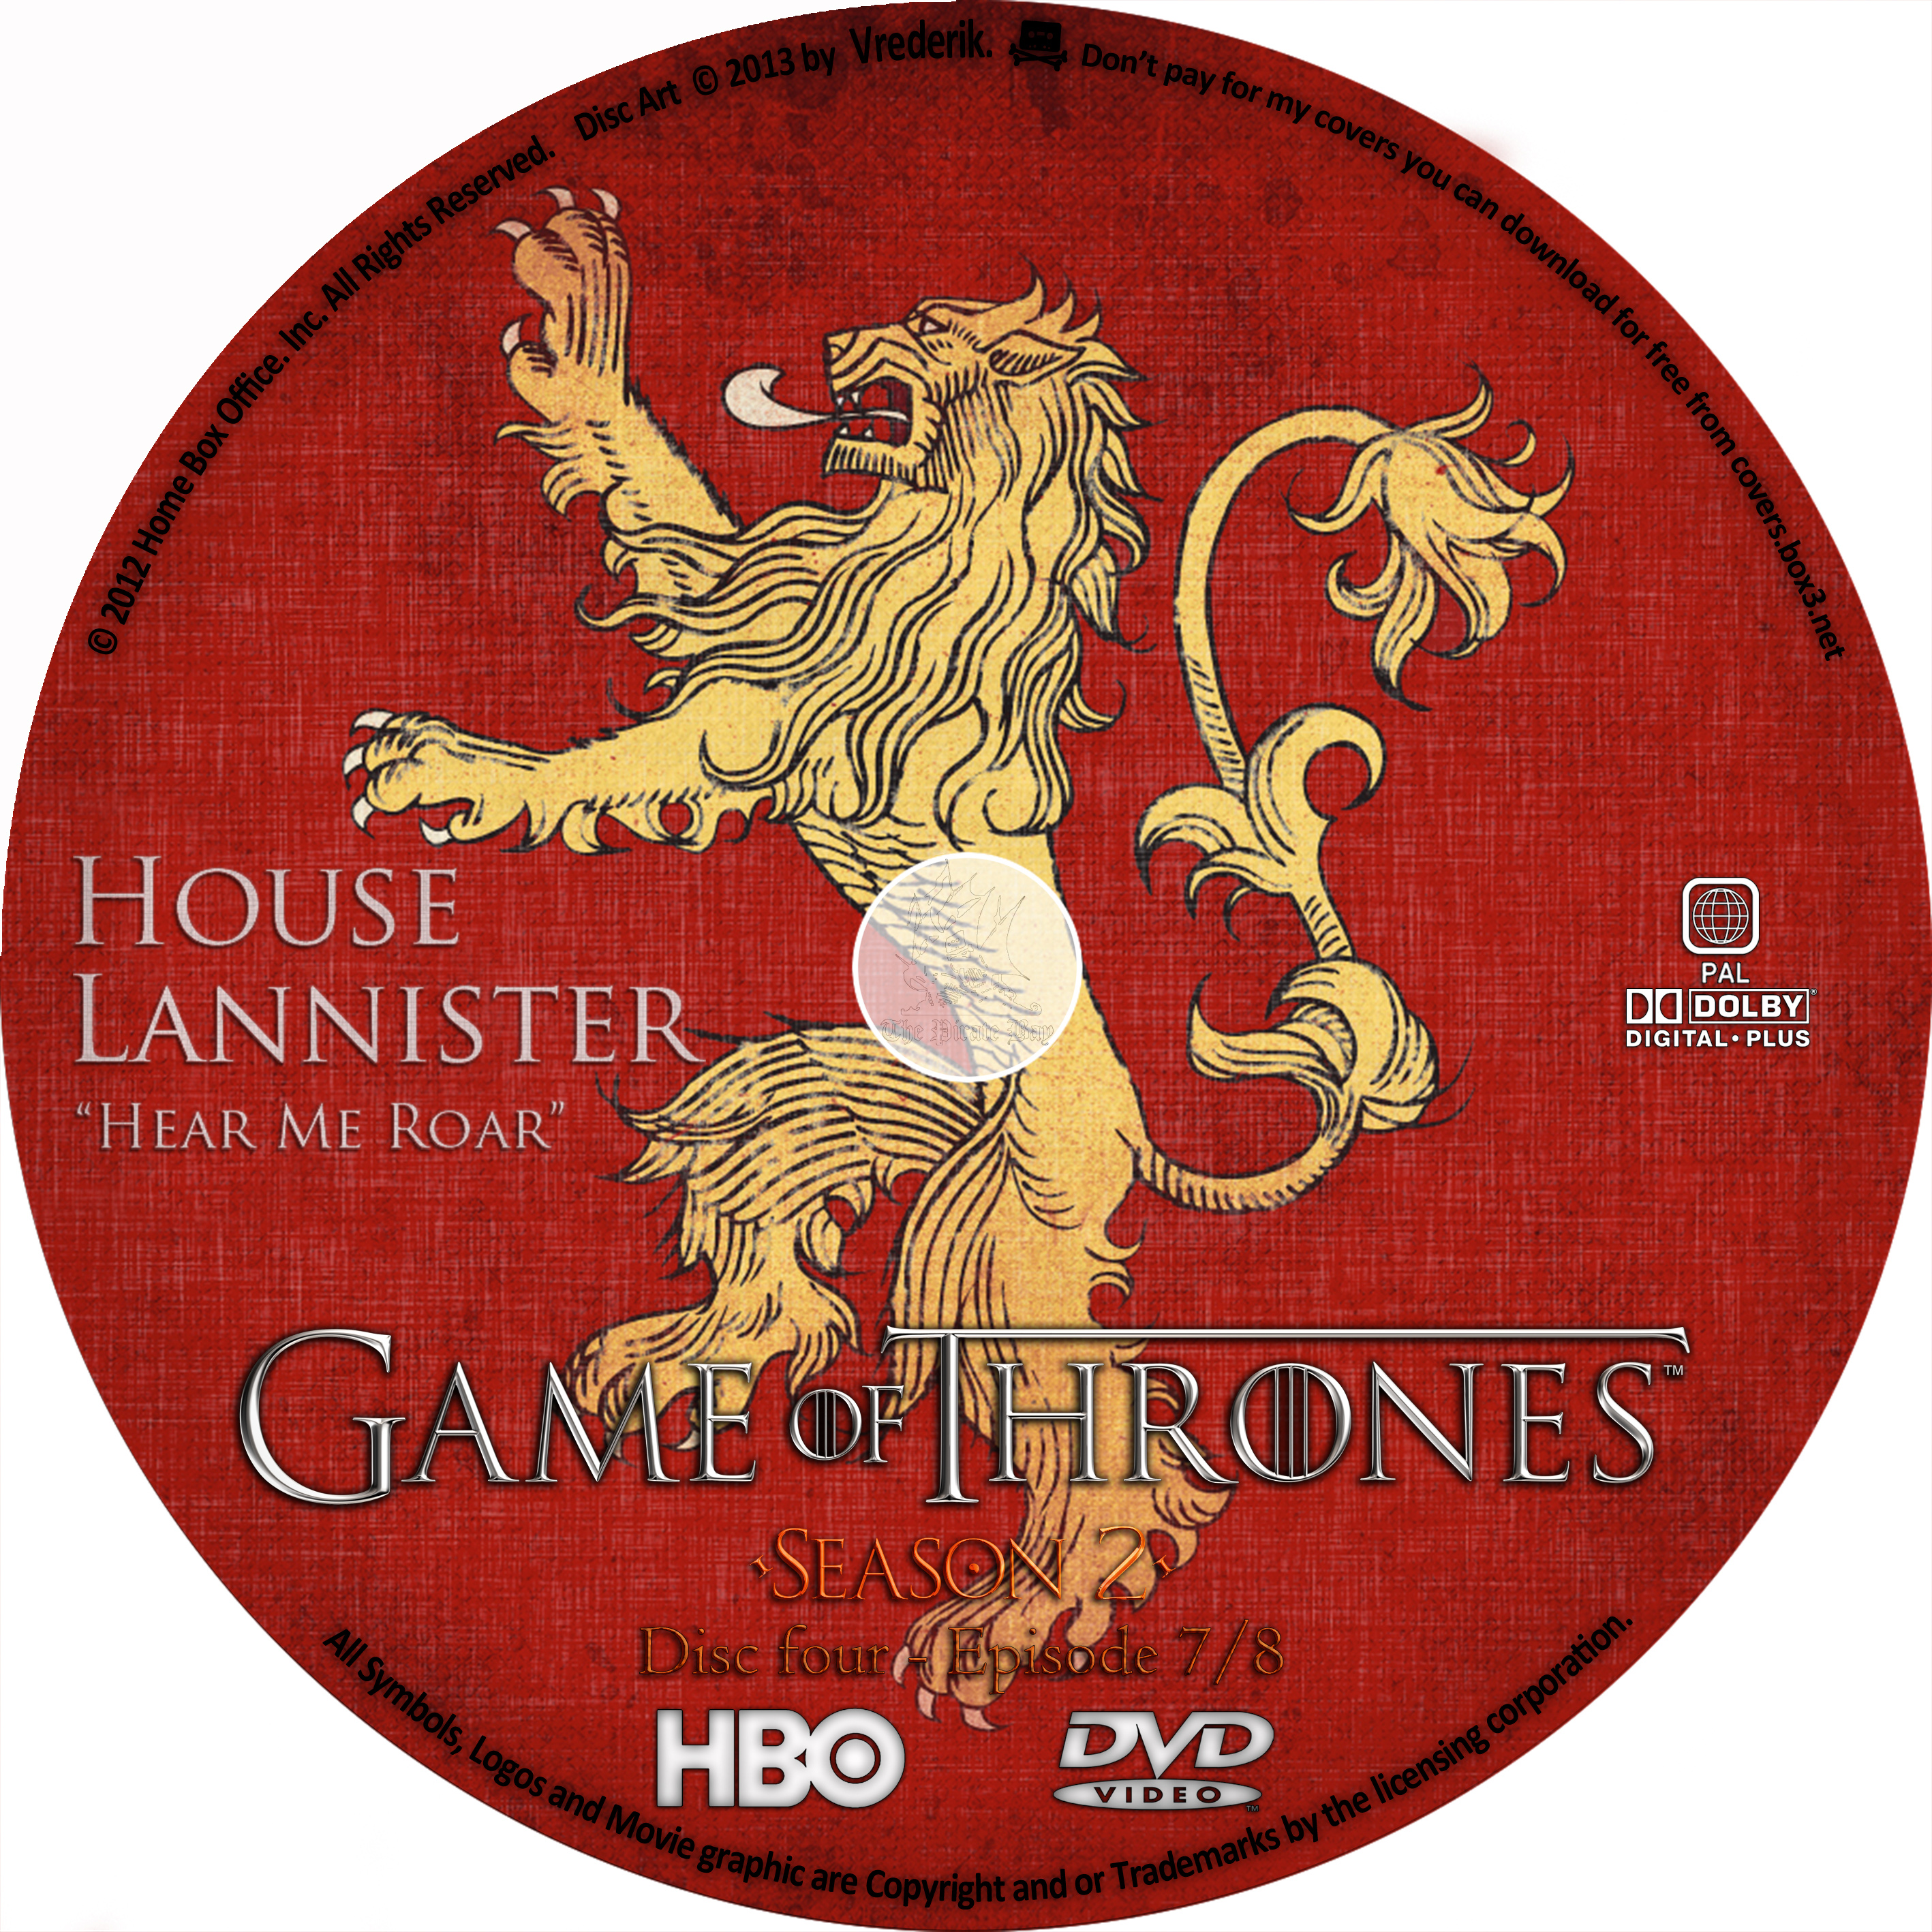 New Details on the Game of Thrones Season 5 DVDBluray